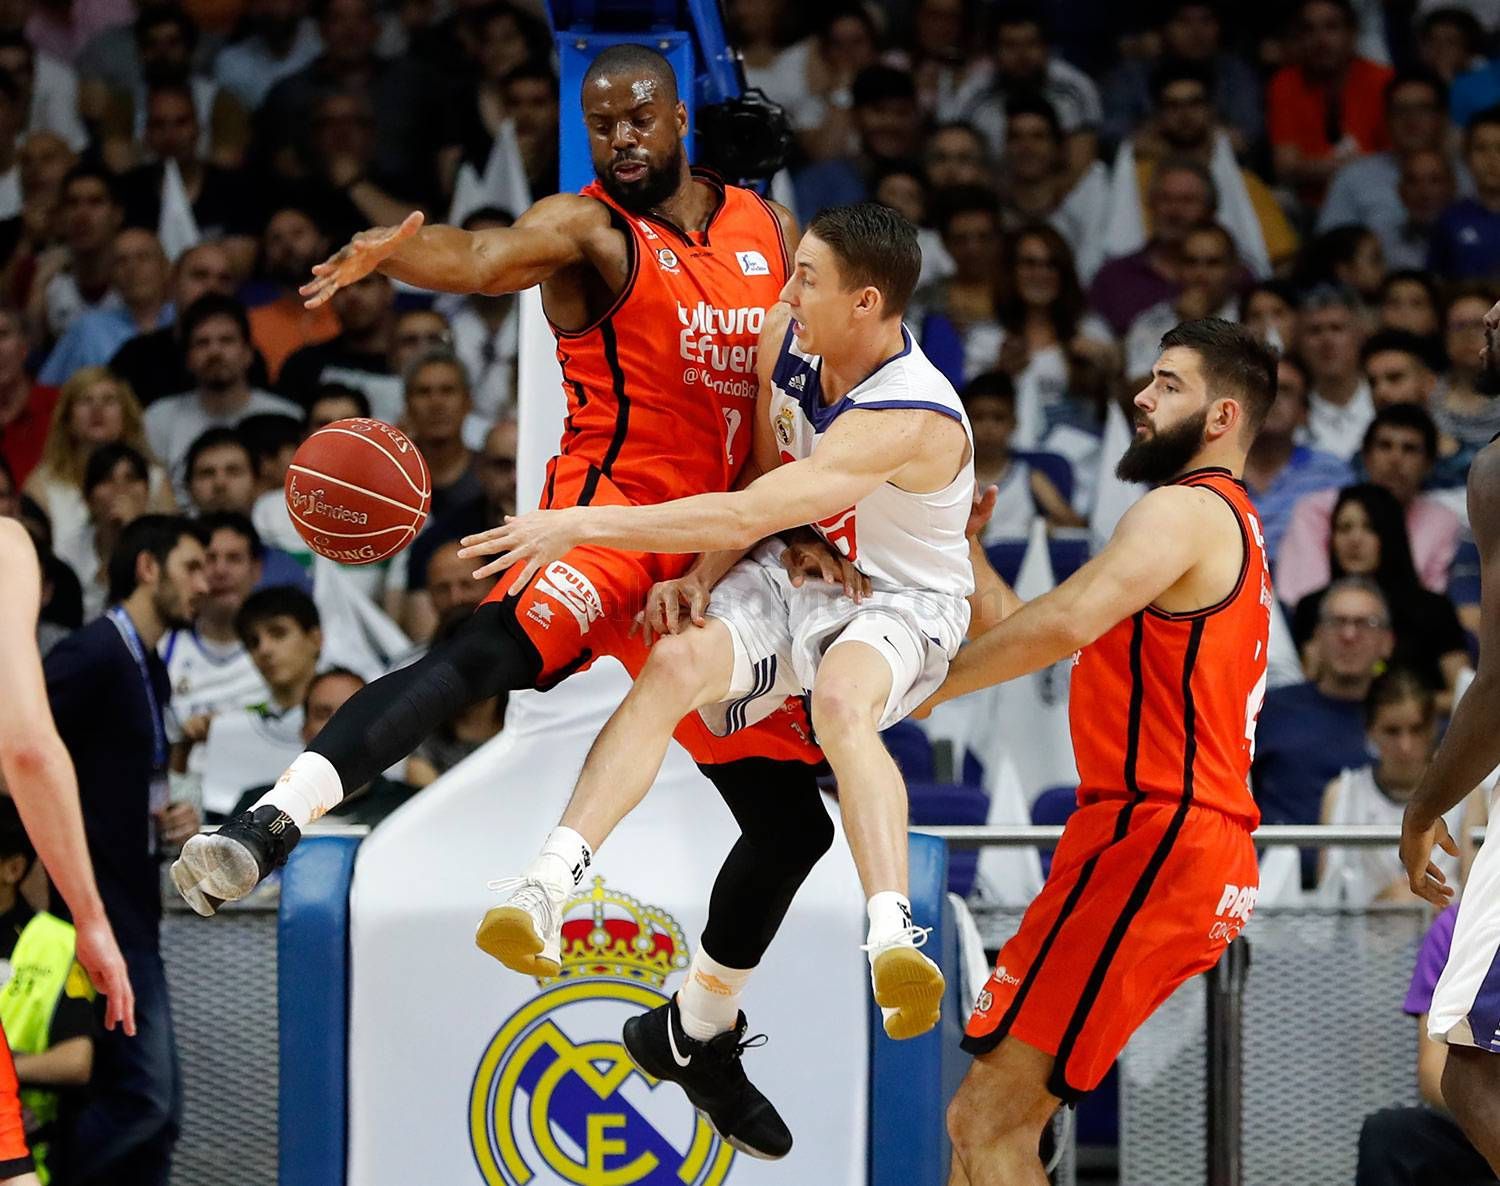 Real Madrid - Real Madrid - Valencia Basket - 09-06-2017